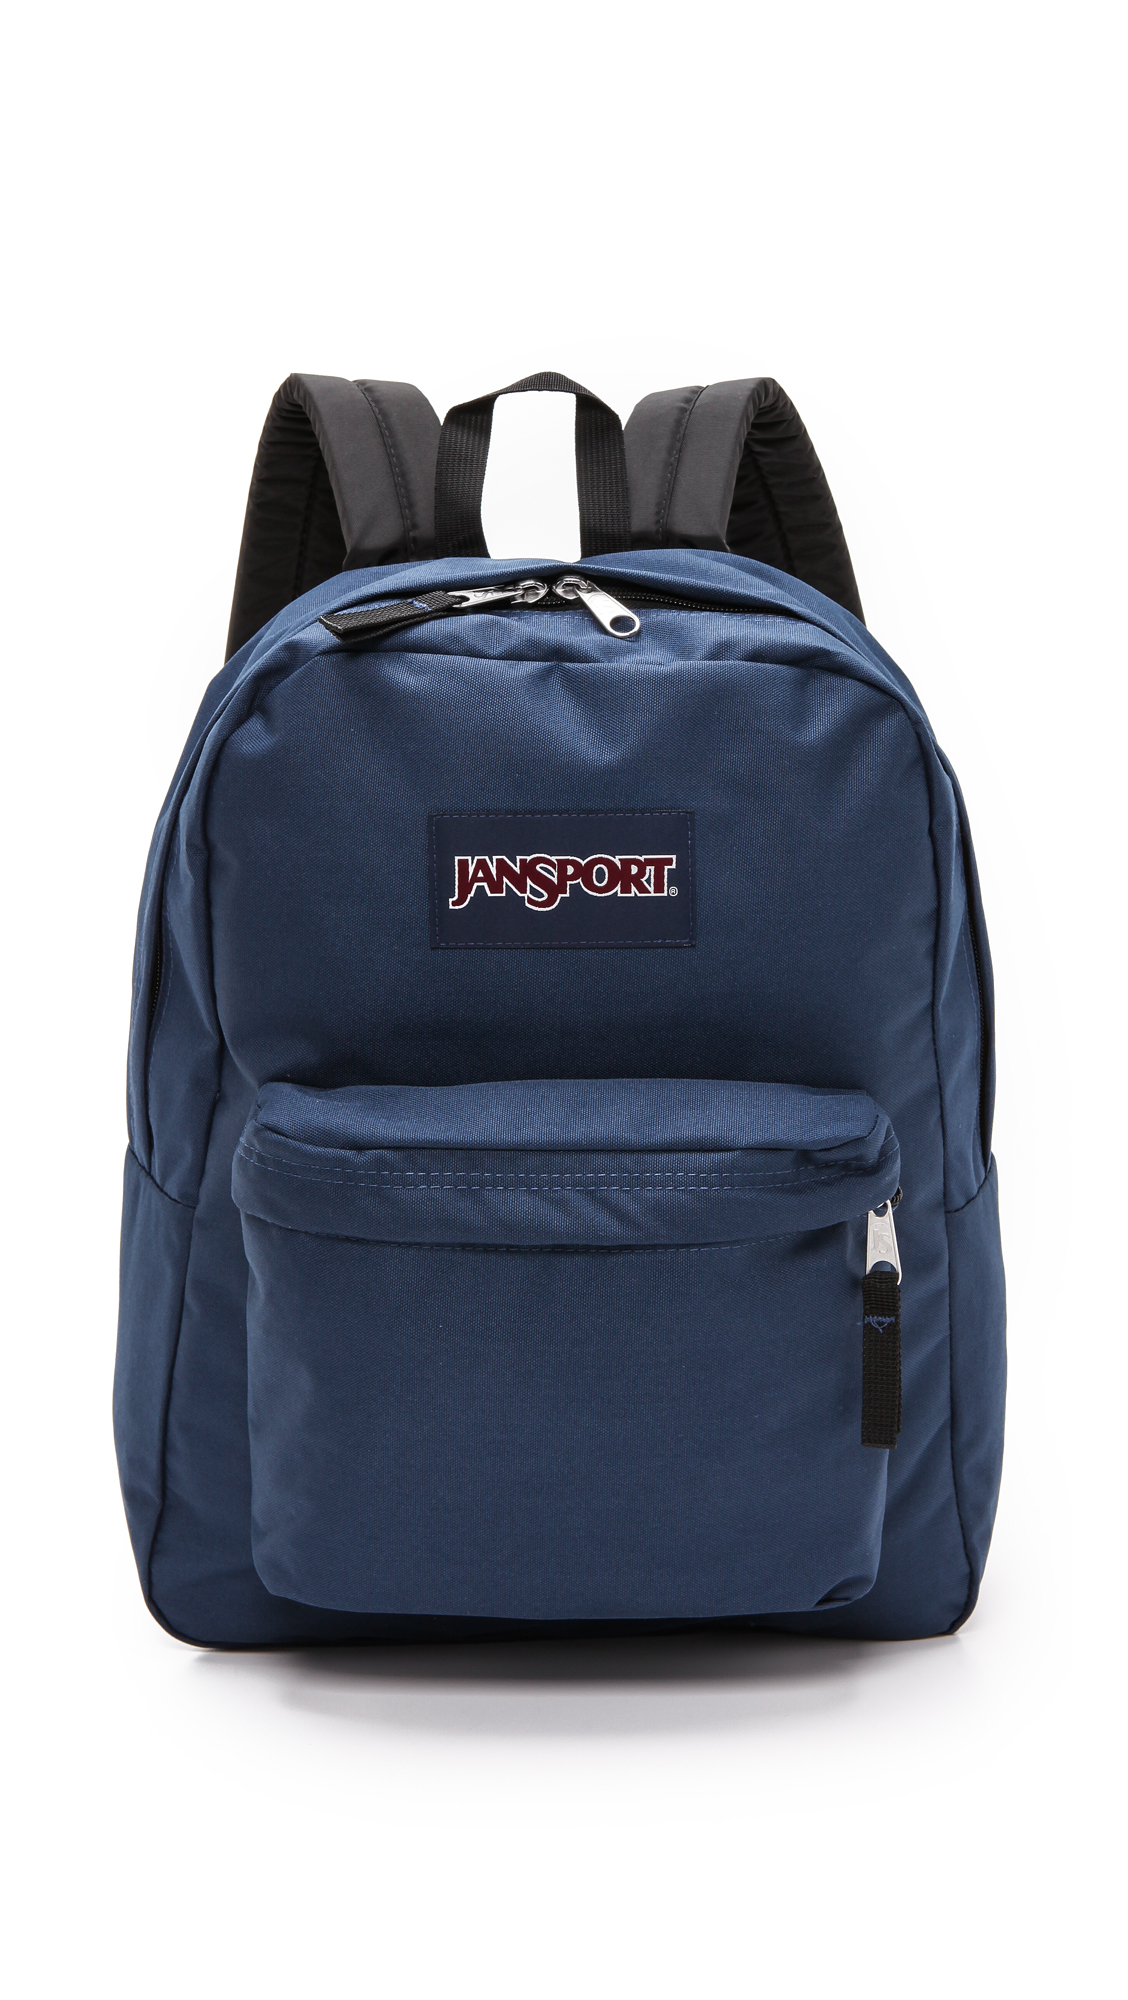 Jansport T501003 SUPERBREAK (NAVY) - Singapore Best Prices